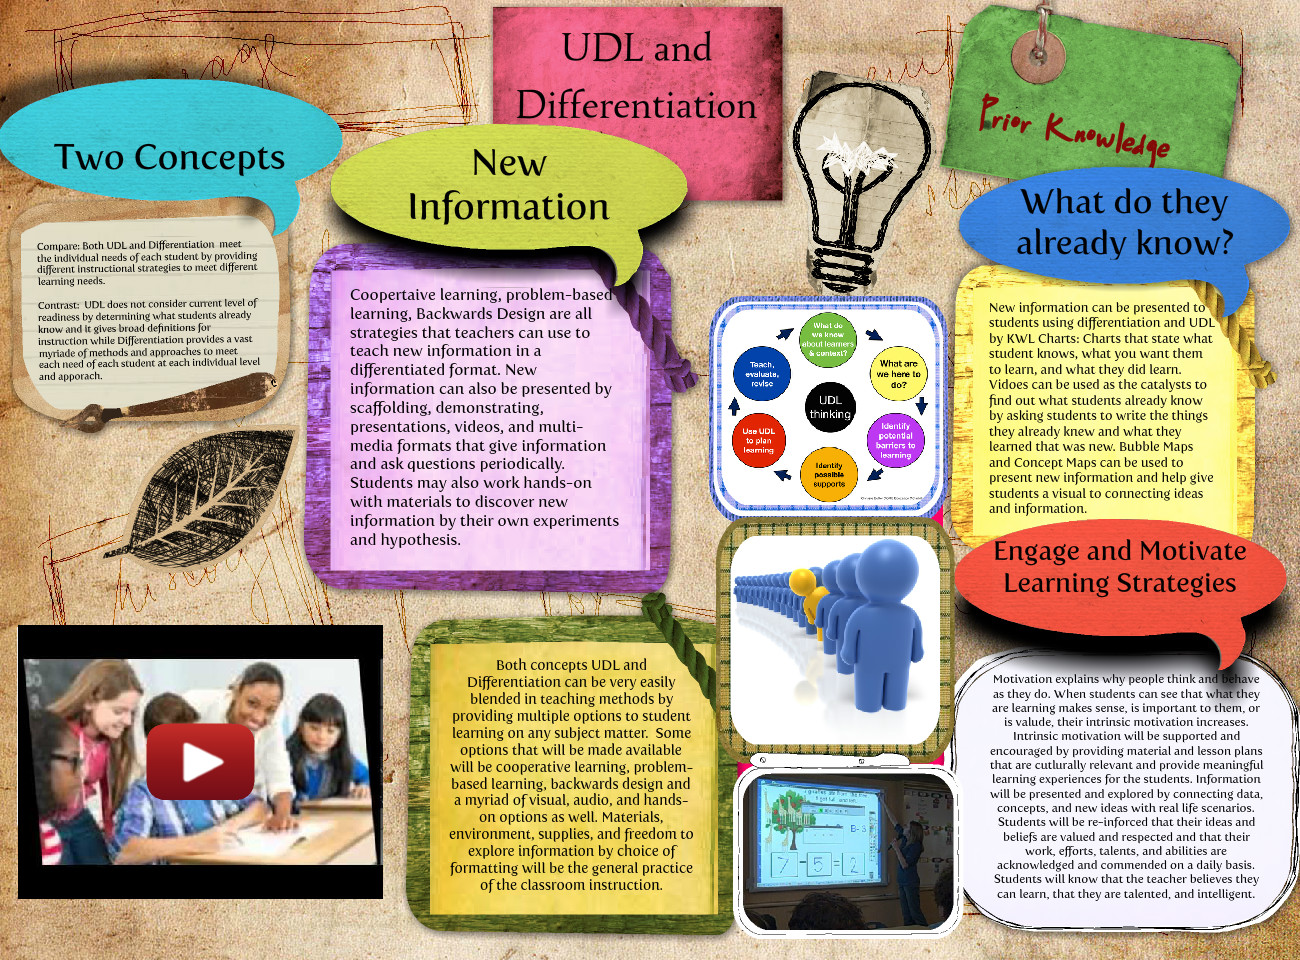 UDL and Differentation